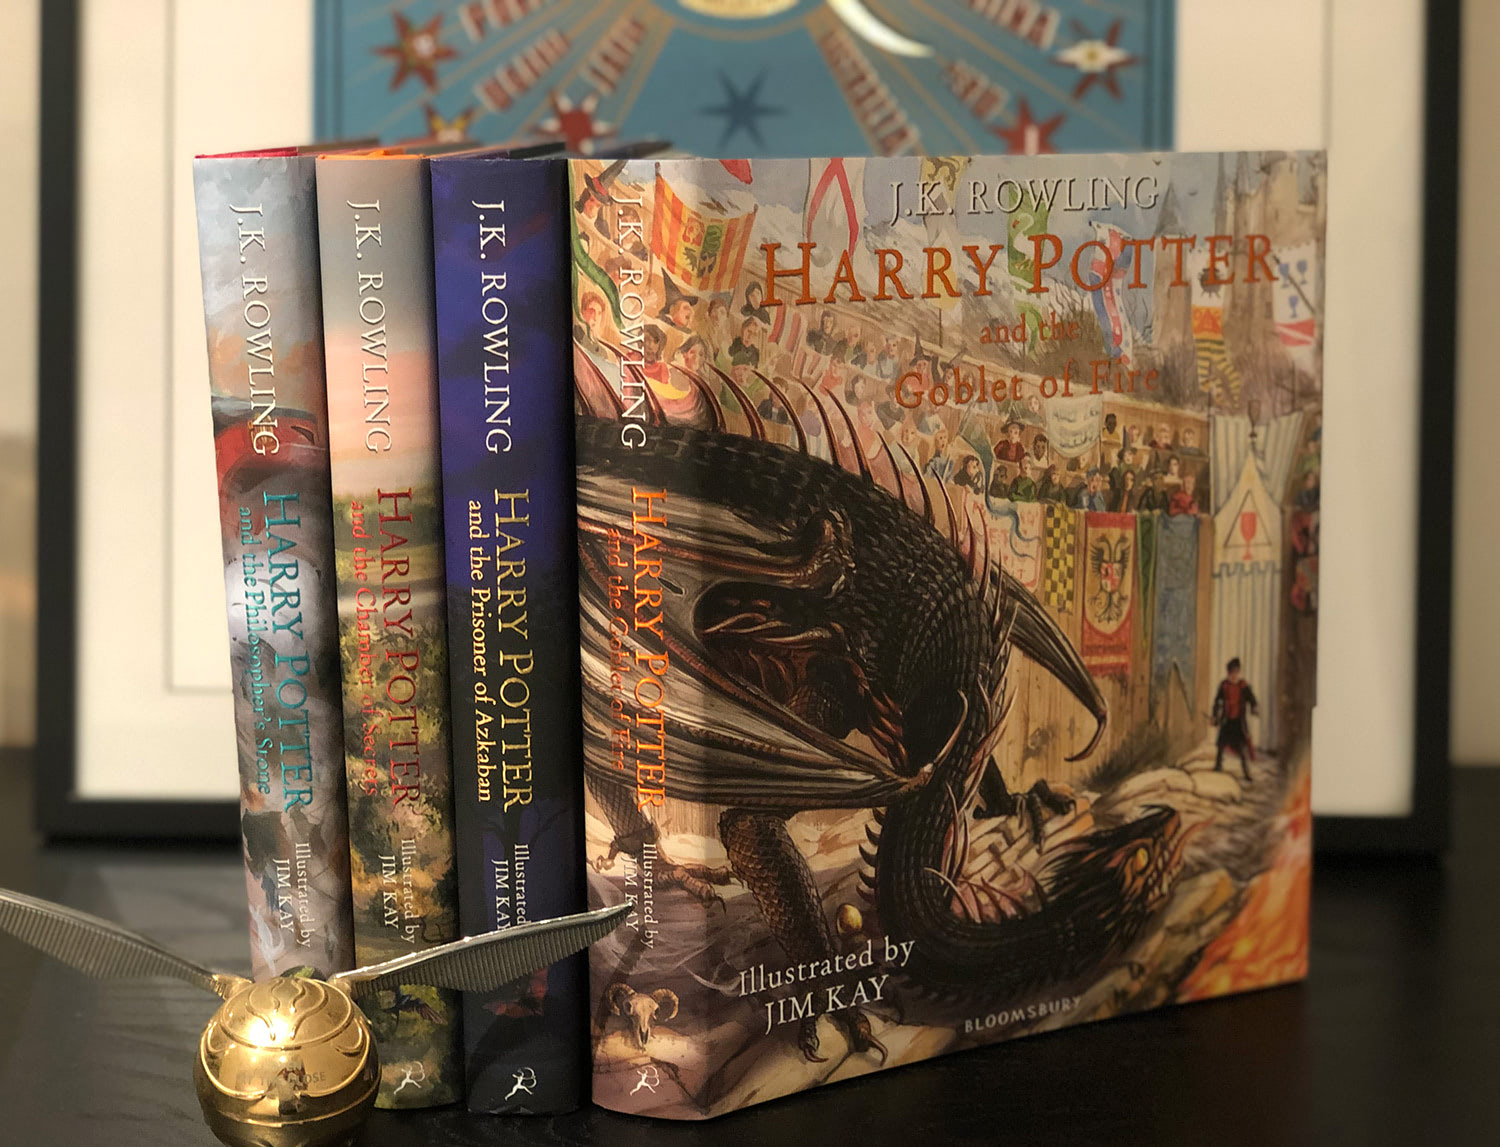 'Goblet of Fire' illustrated edition spine